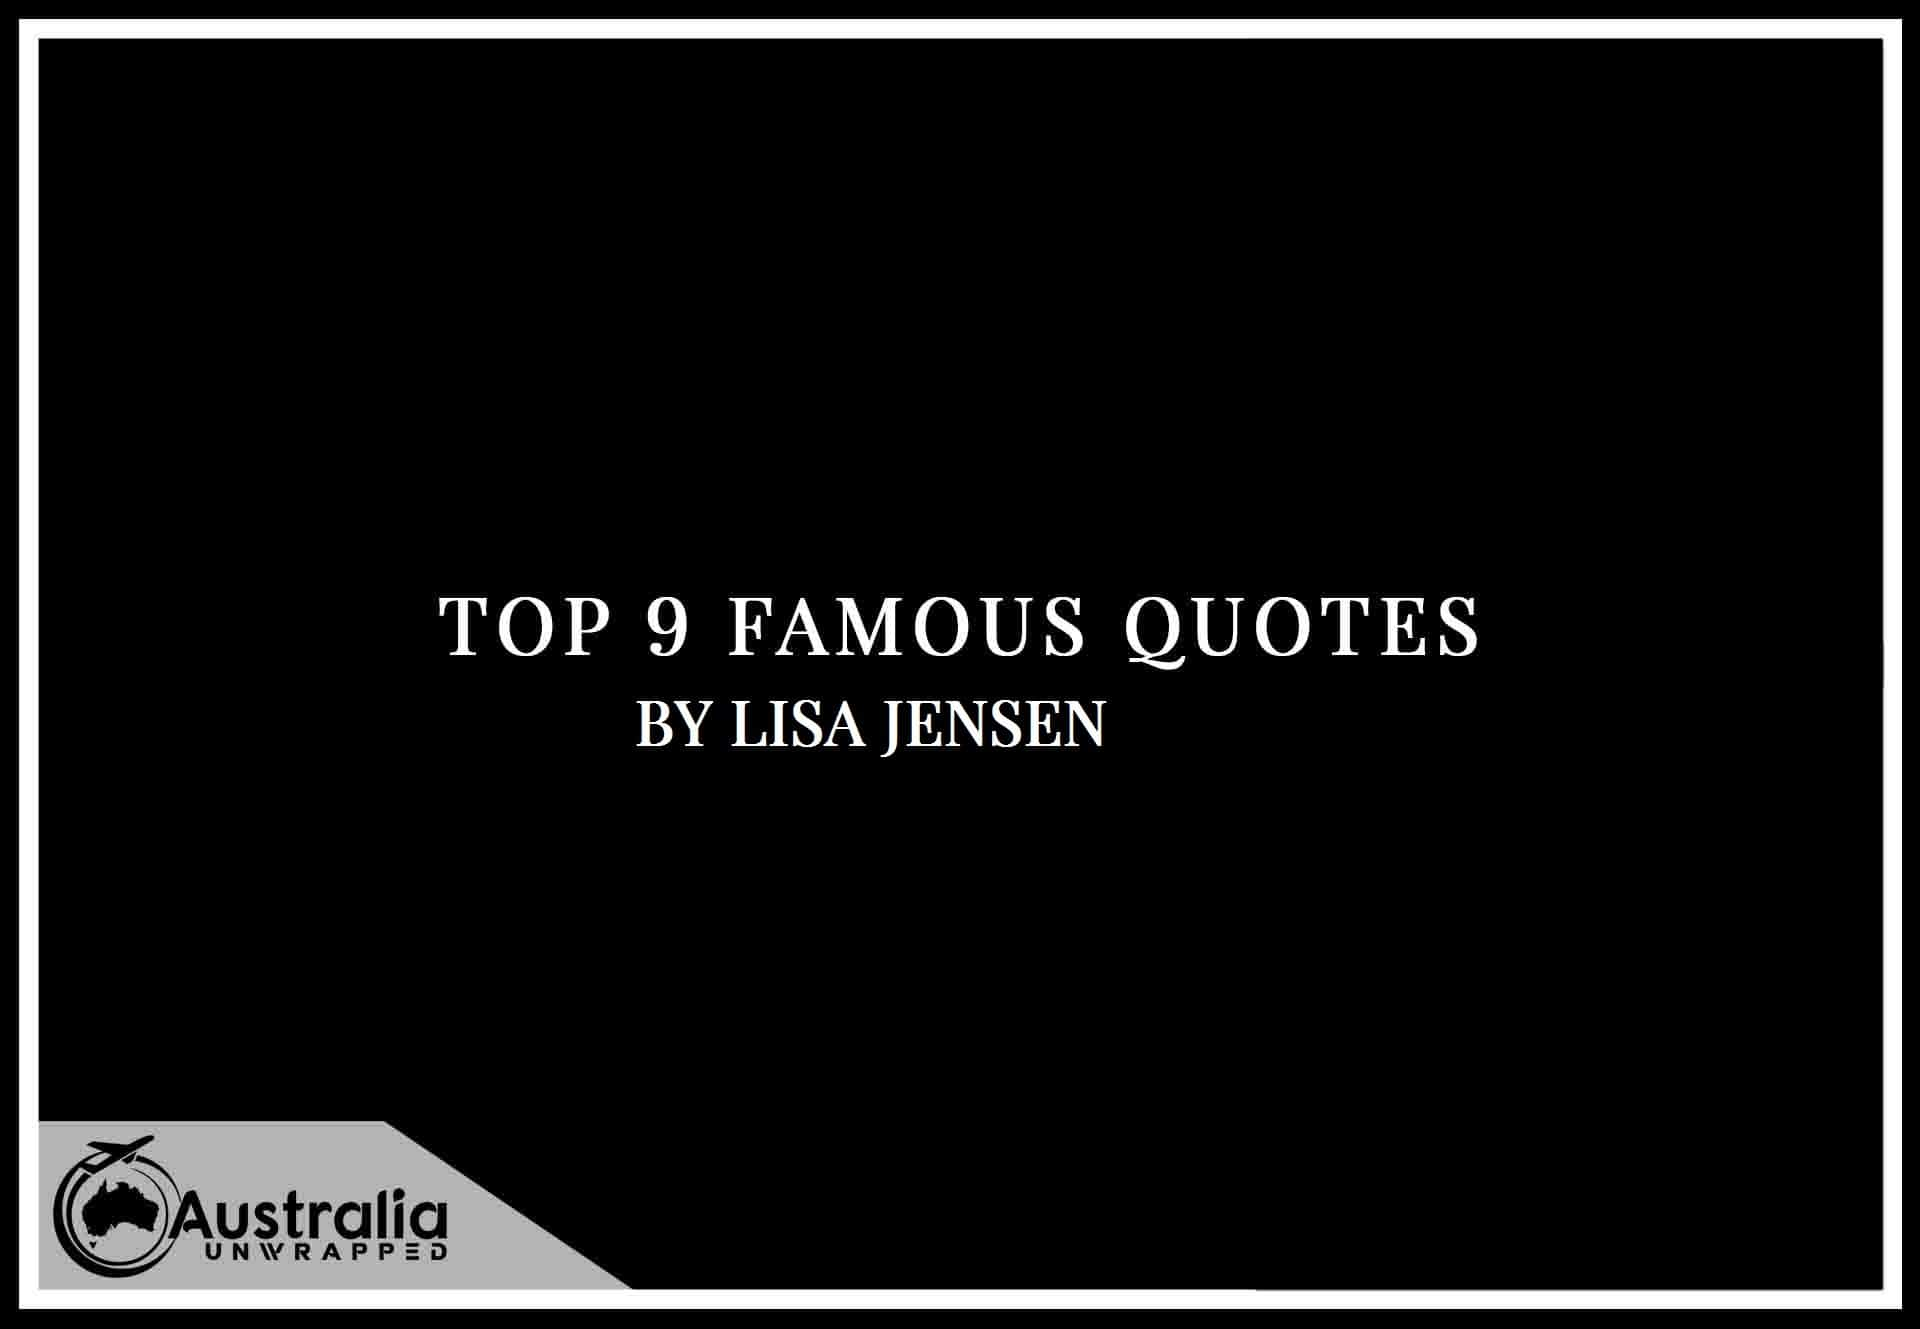 Lisa Jensen's Top 9 Popular and Famous Quotes